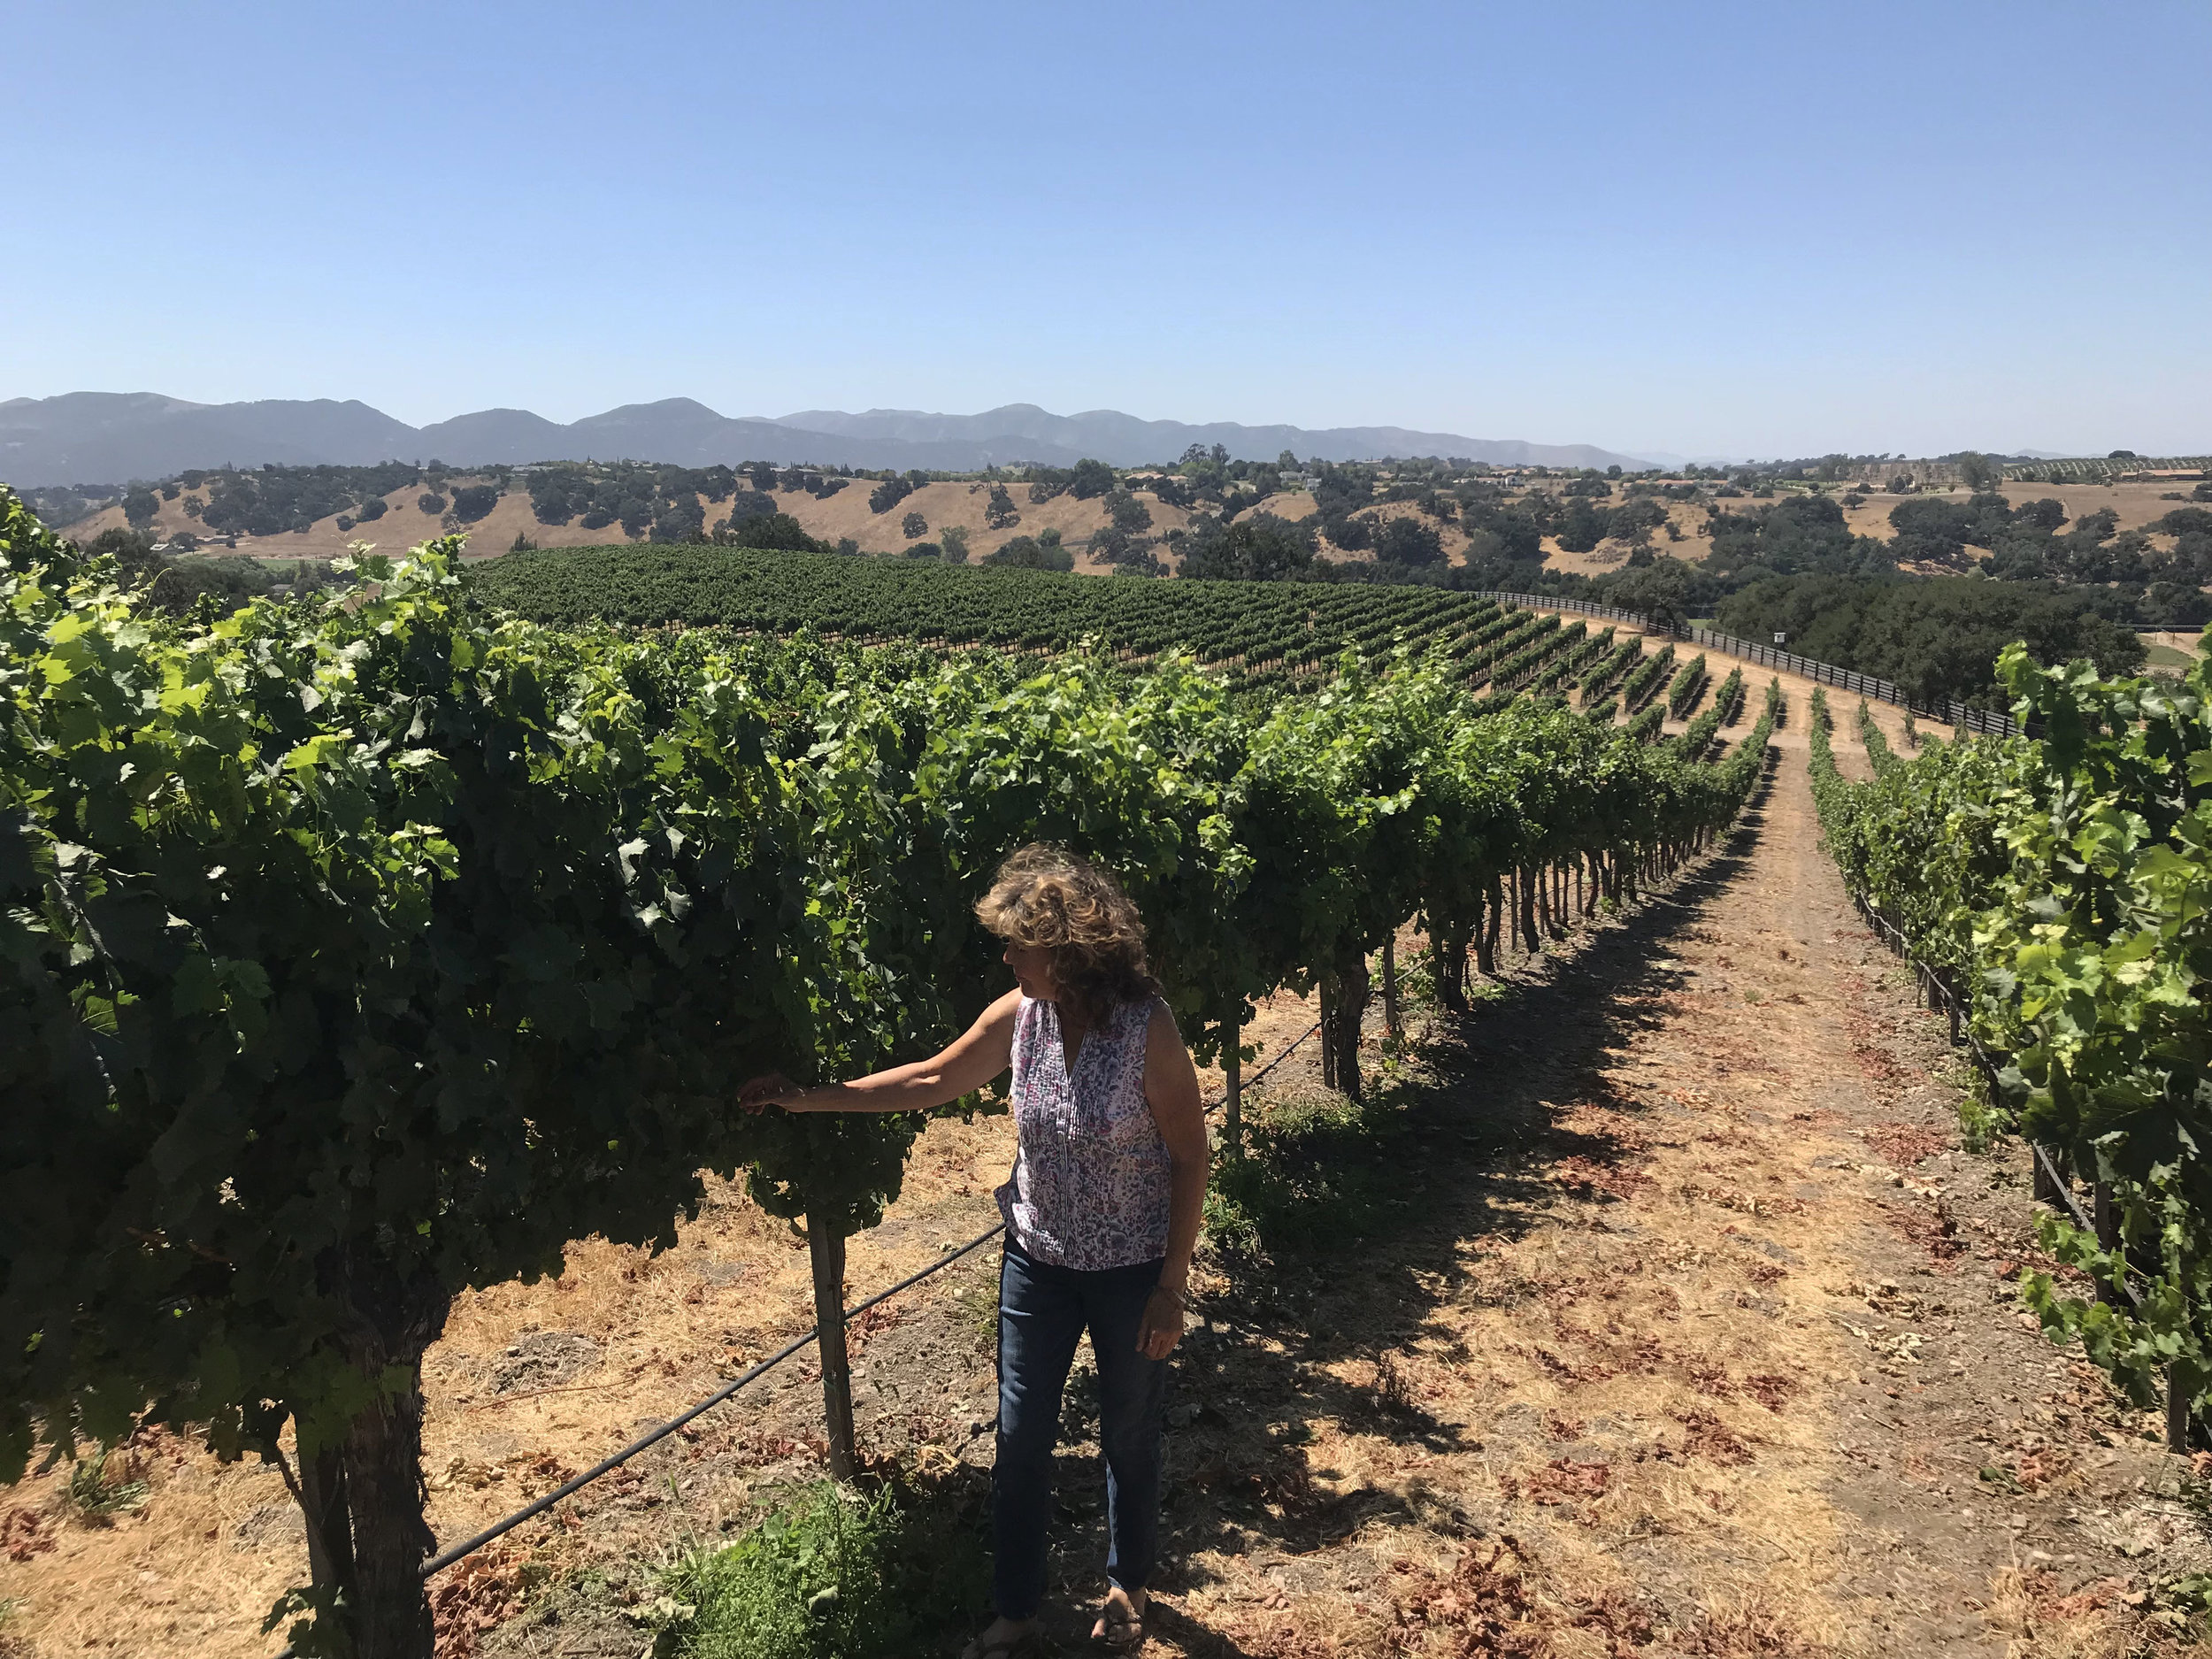 Karen Steinwachs checks grapes to see if they are ready to harvest at the Buttonwood Vineyard in the Santa Ynez Valley, CA. Photo credit: Adriana Cargill